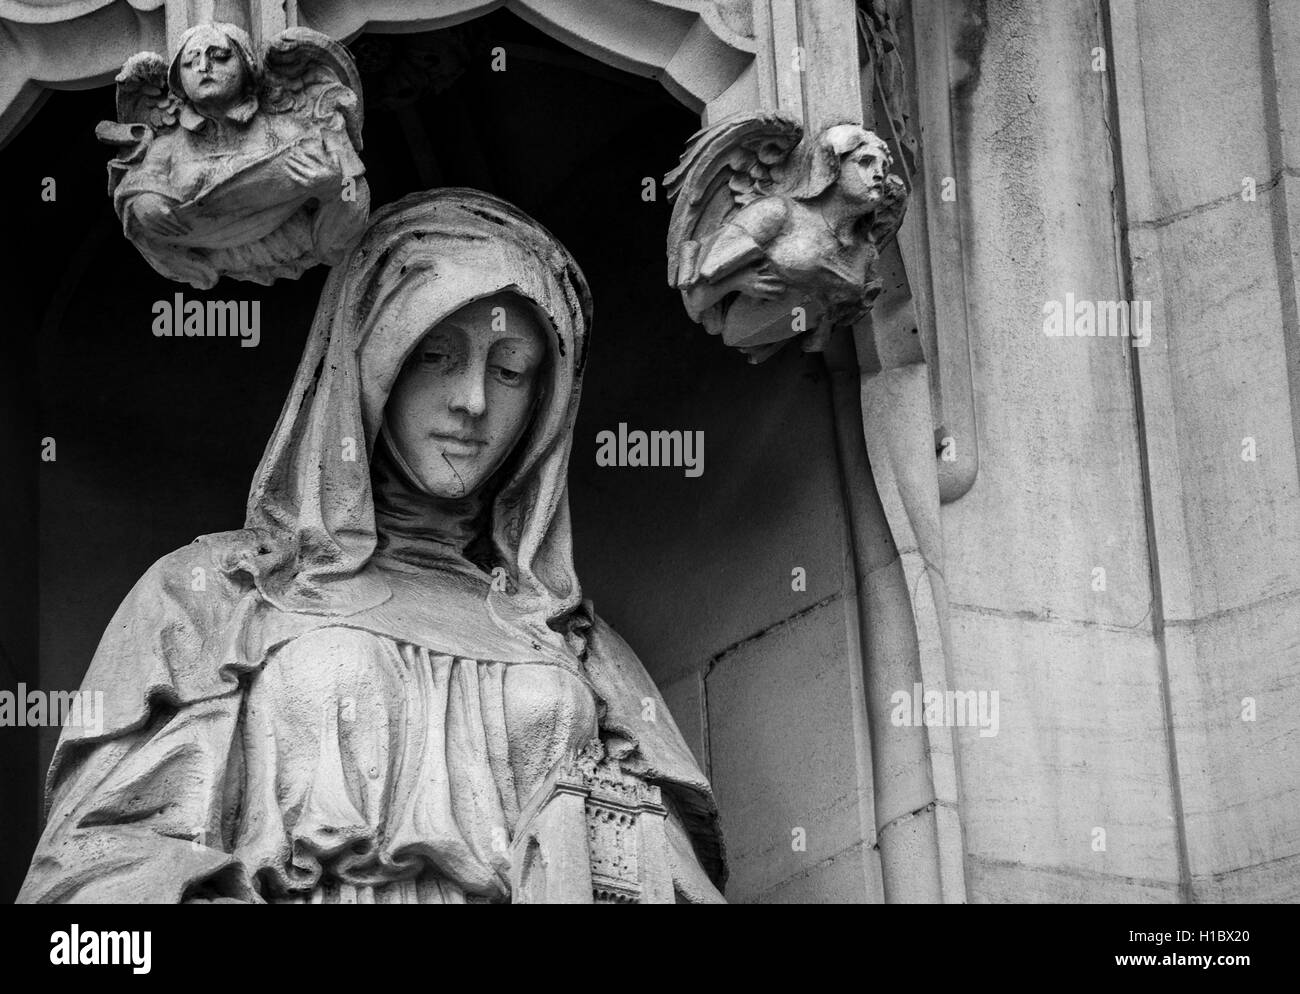 LONDON, UK - MAY 25, 2014: Beautiful lady statue on the wall of the Supreme Court in London, UK. Processed in black - Stock Image